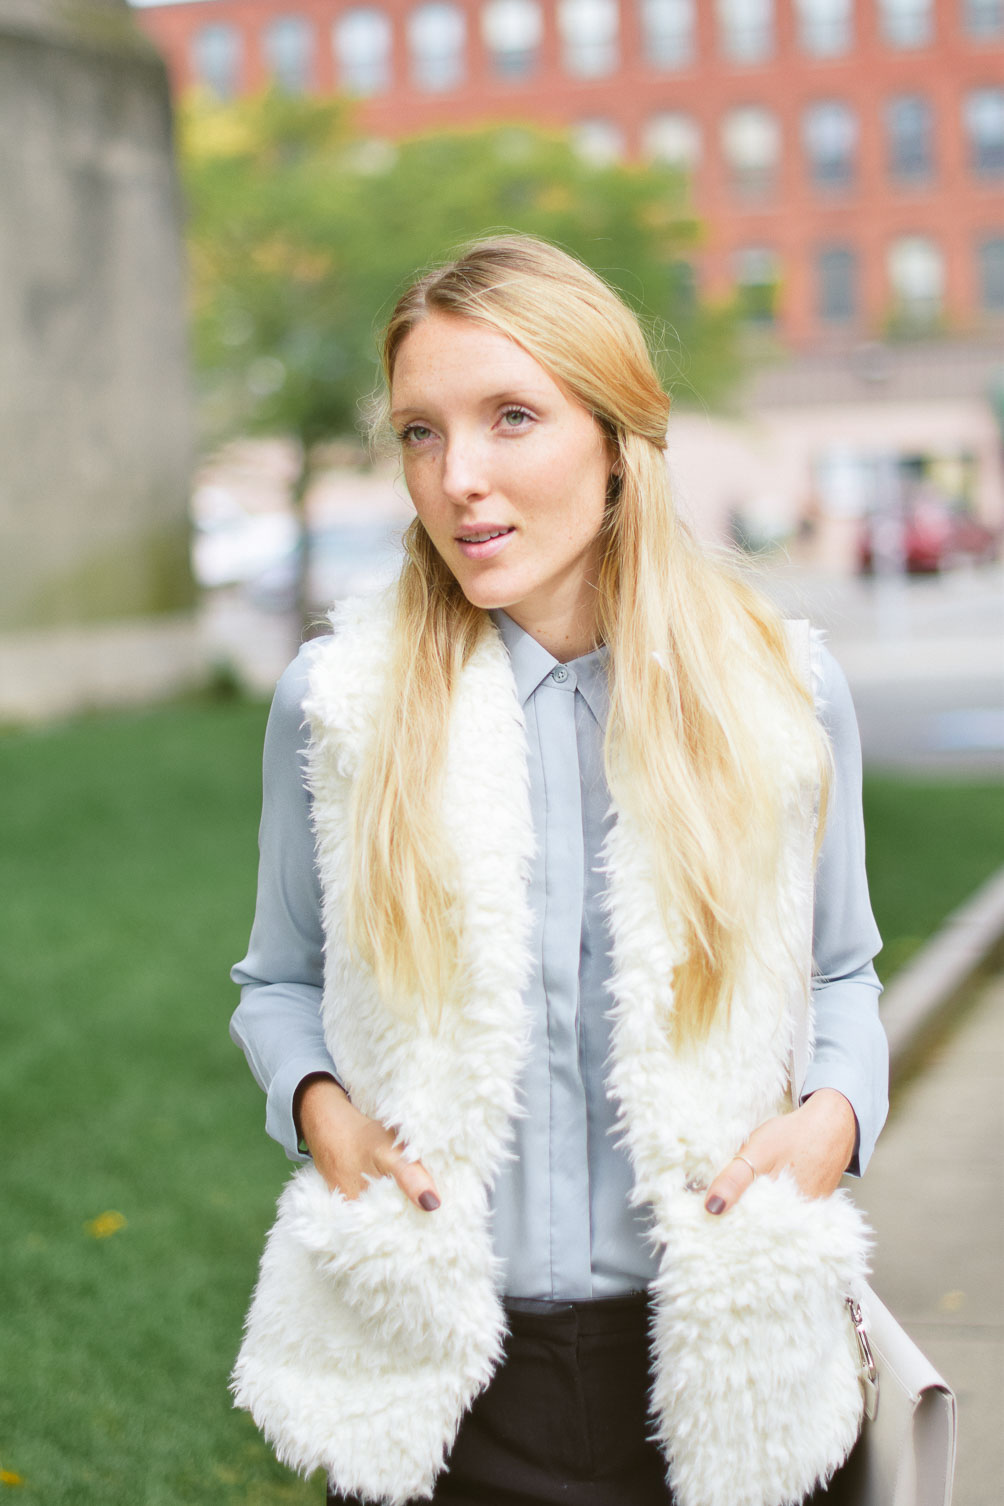 Leslie Musser wear to work outfit inspiration with a shearling vest on one brass fox